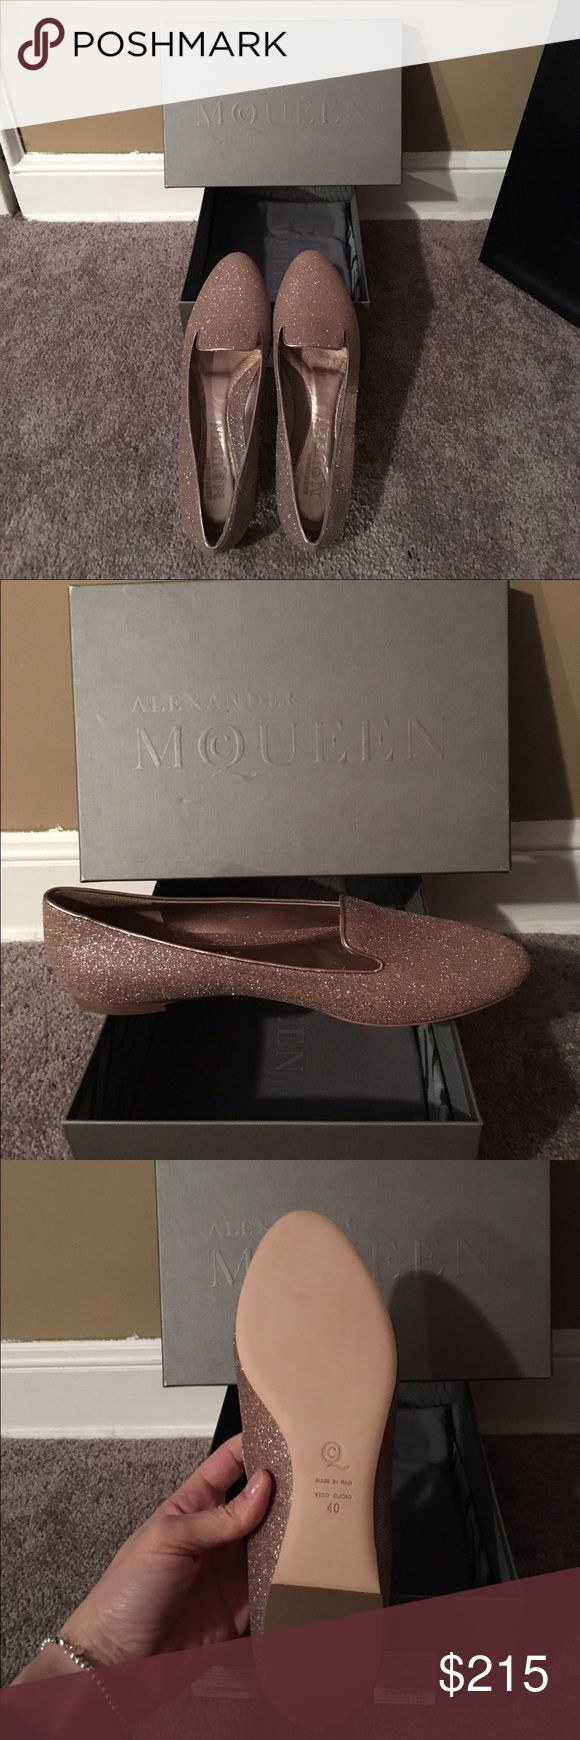 NIB Alexander McQueen Sparkly Pink Loafers Sz 40!! Brand new in box 1000% authentic Alexander McQueen sparkly pink loafers!! These are a size 40, but I think run a little small. I bought these at a sample sale in NYC a little while ago and have just never worn them. Dust bag is included. Please let me know if you have any questions and please make me an offer. Thx!! 😀😀 Alexander McQueen Shoes Flats & Loafers